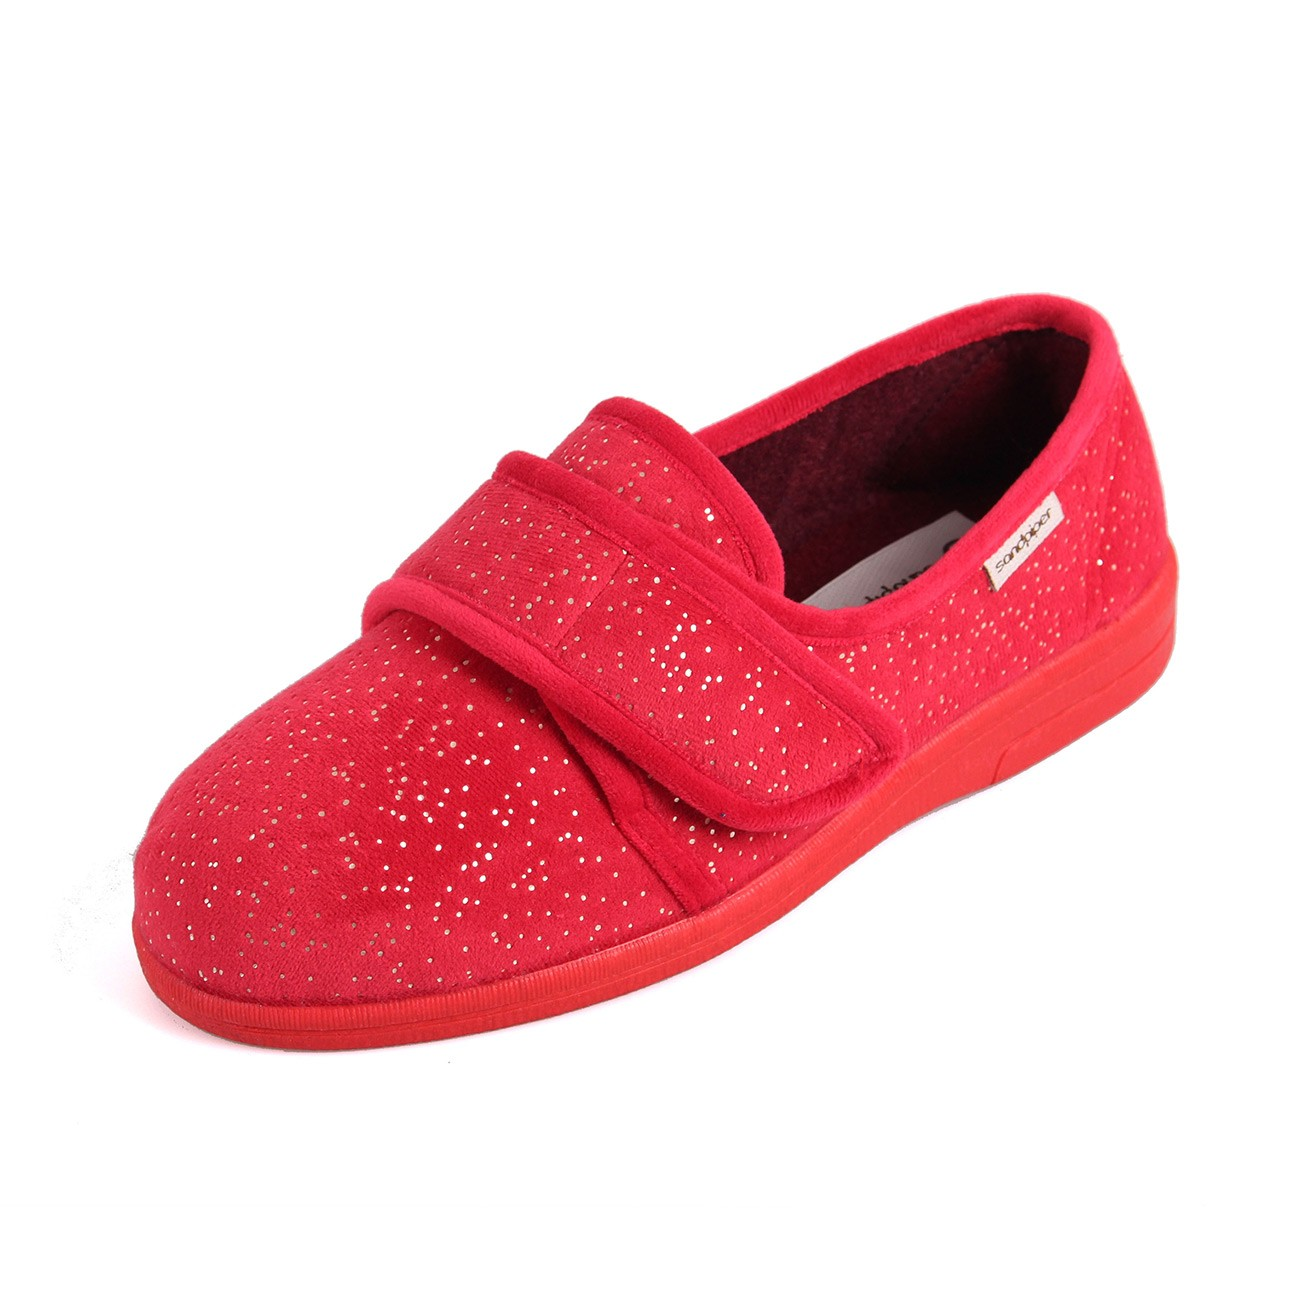 Sandpiper Sophie Cherry Sparkle Ladies Slipper and ladies wider fit slippers